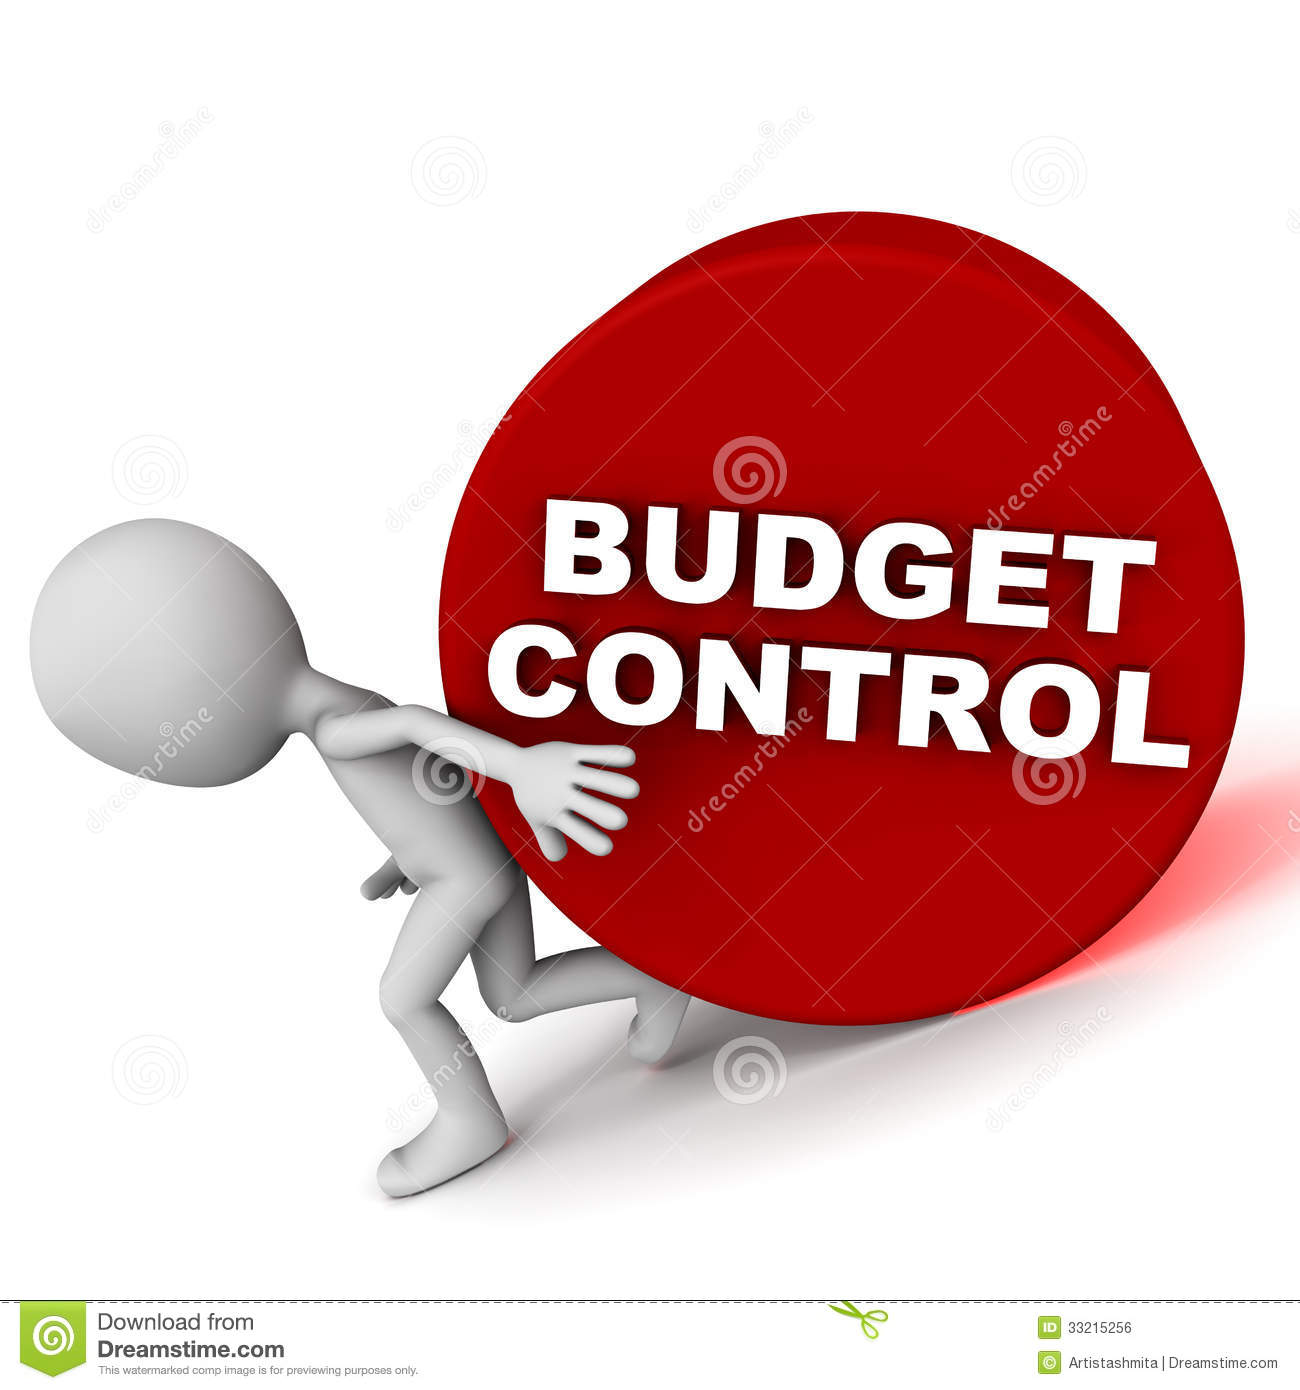 ... , concept of keeping costs at bay, and avoiding the expense ceiling